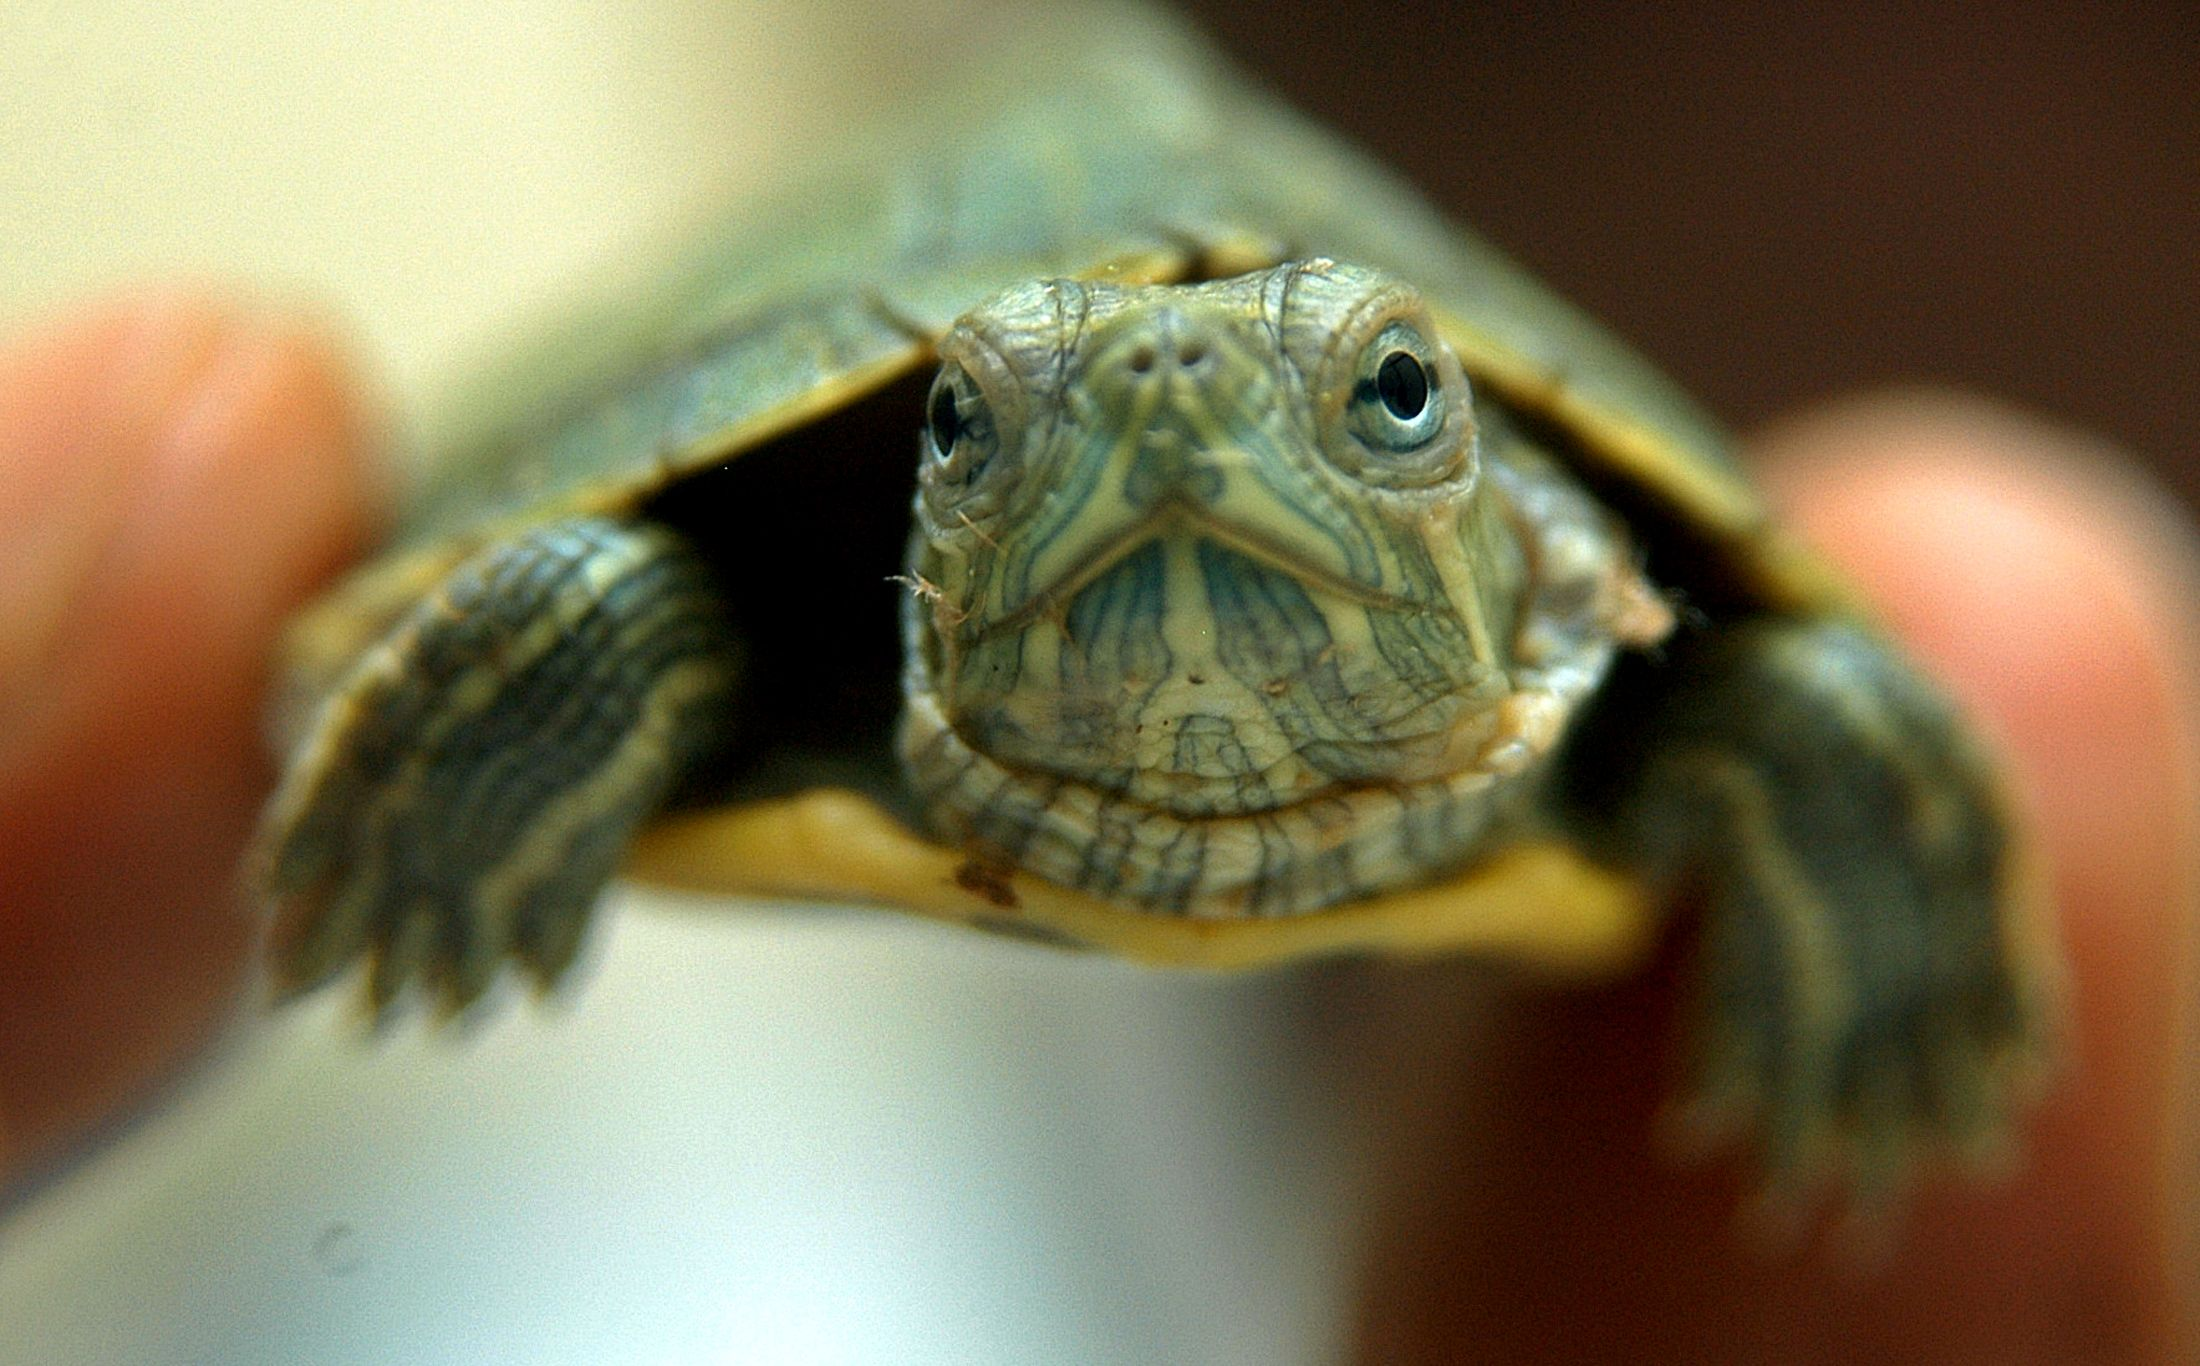 Illegal Traders Have Turned Baby Red Eared Sliders Into A Health